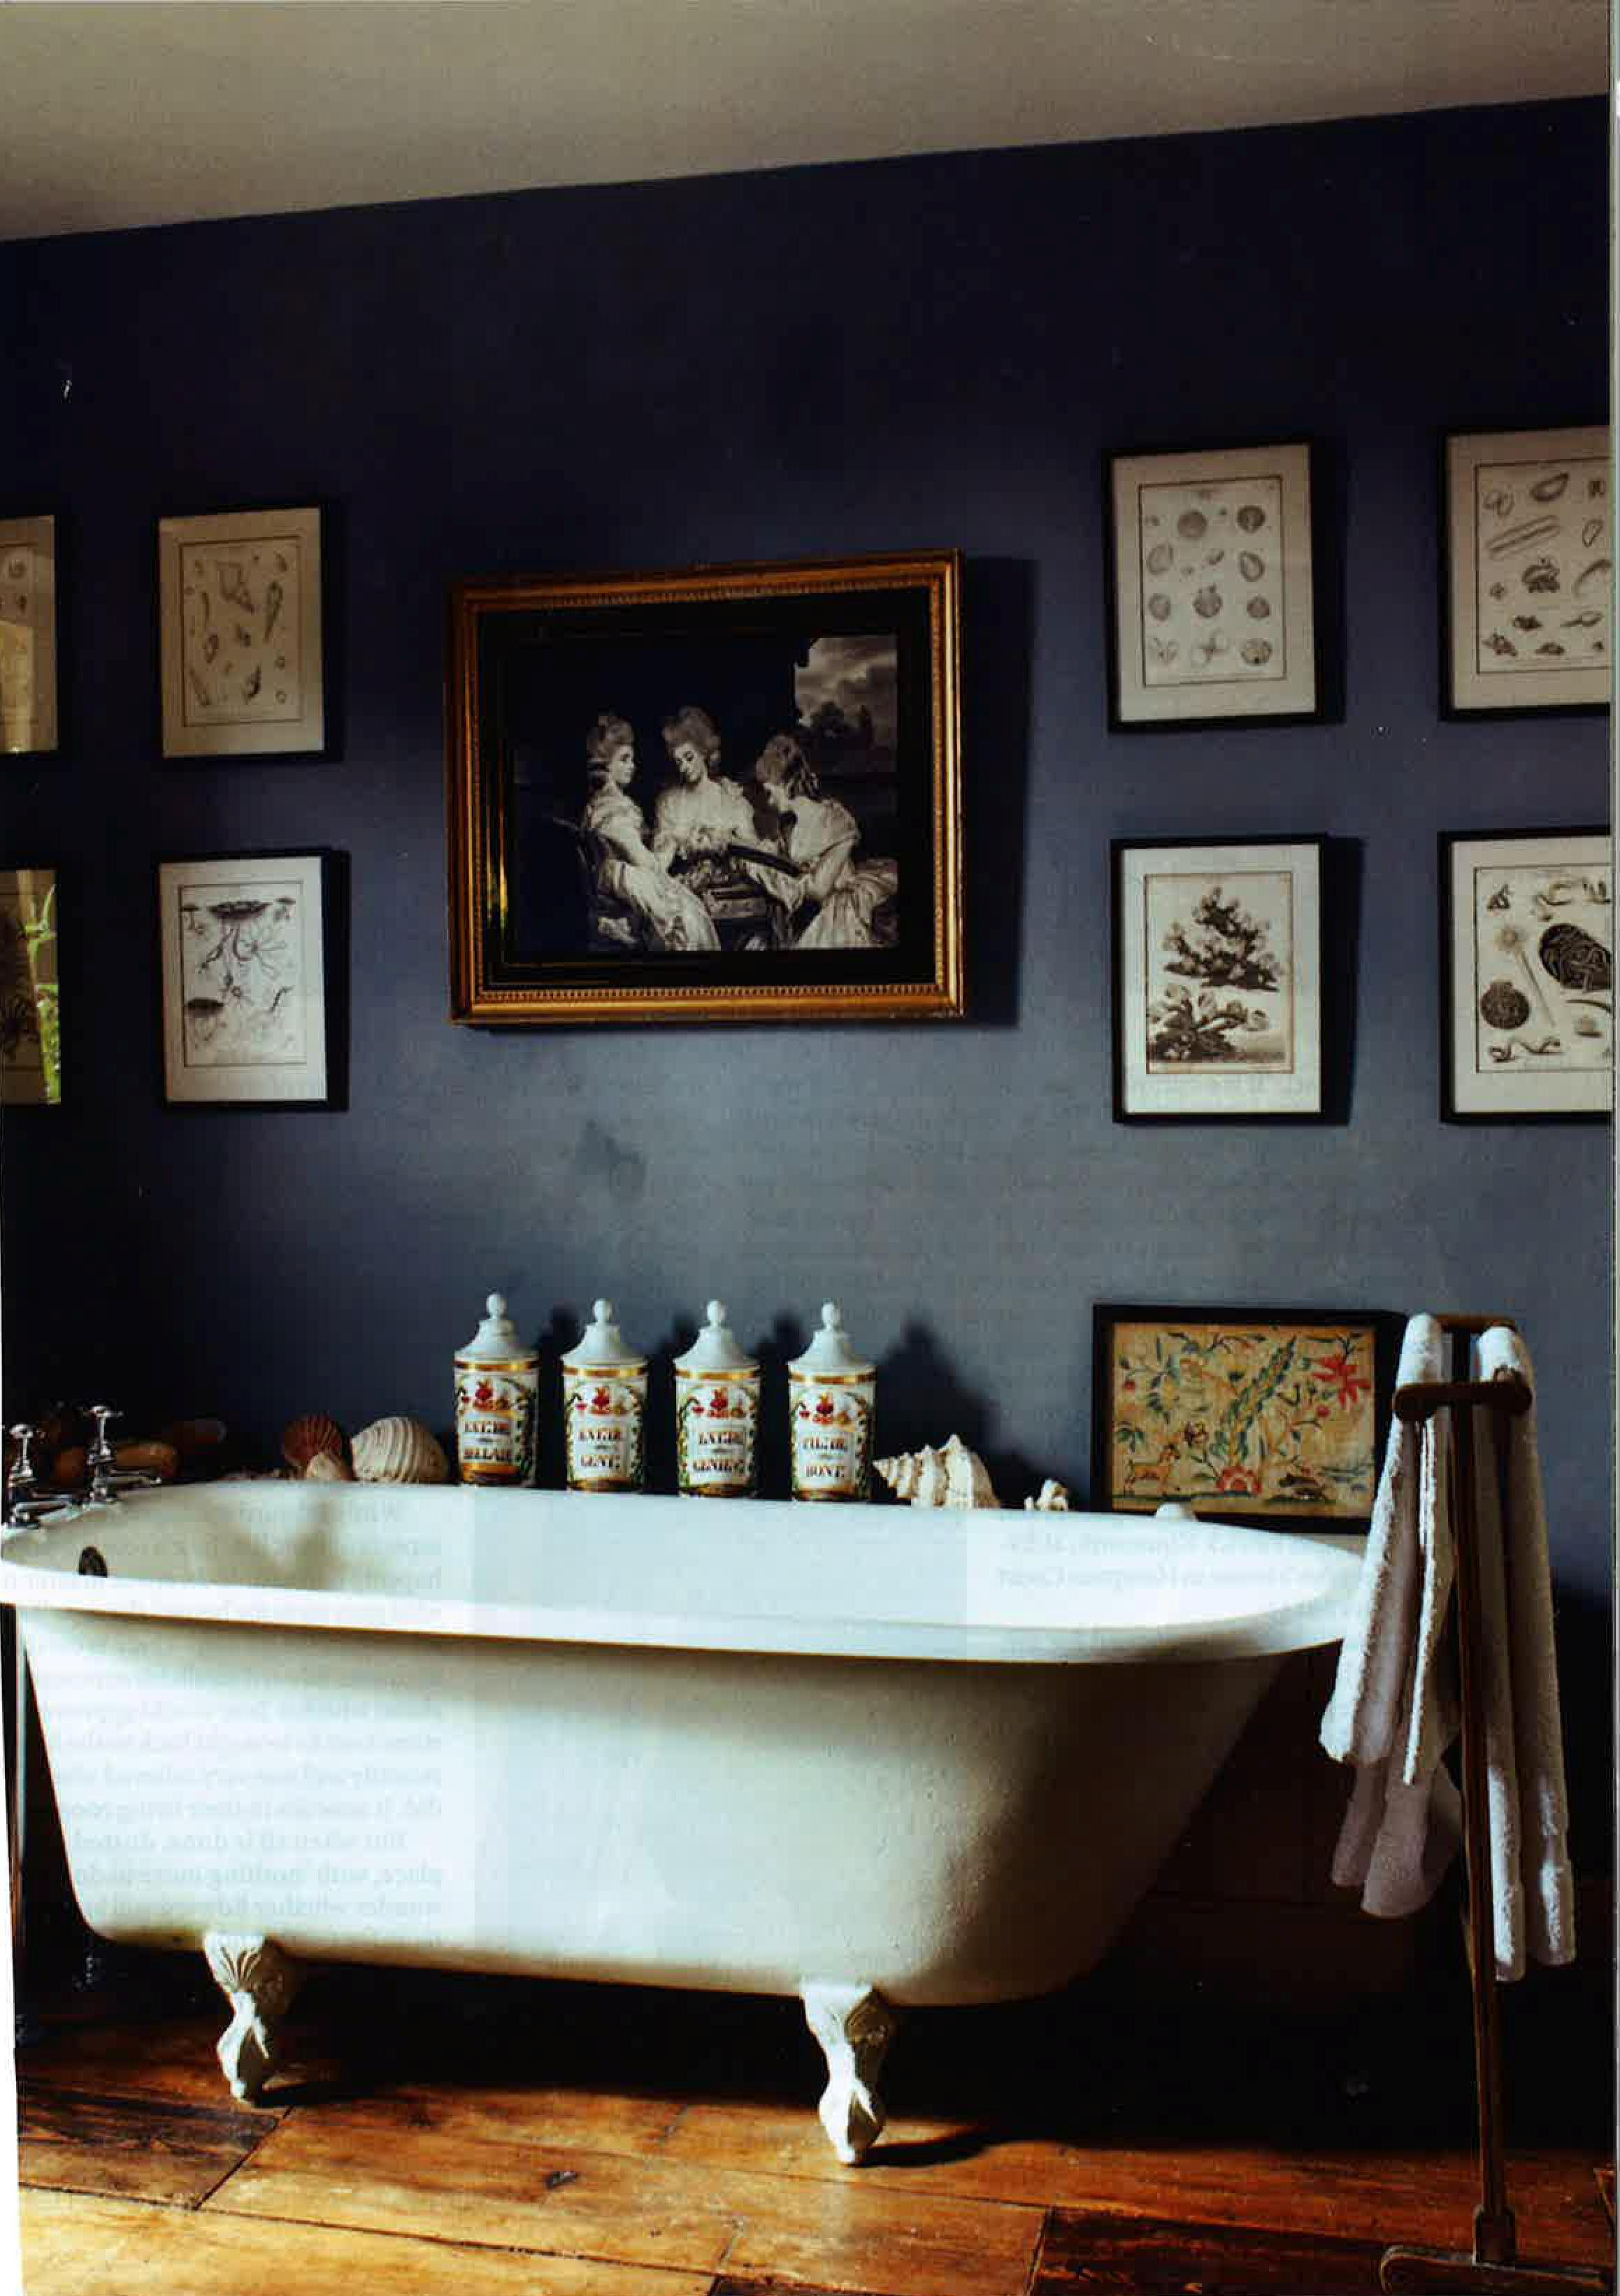 The Classically Familiar Clawfoot Tub | The Perfect Bath